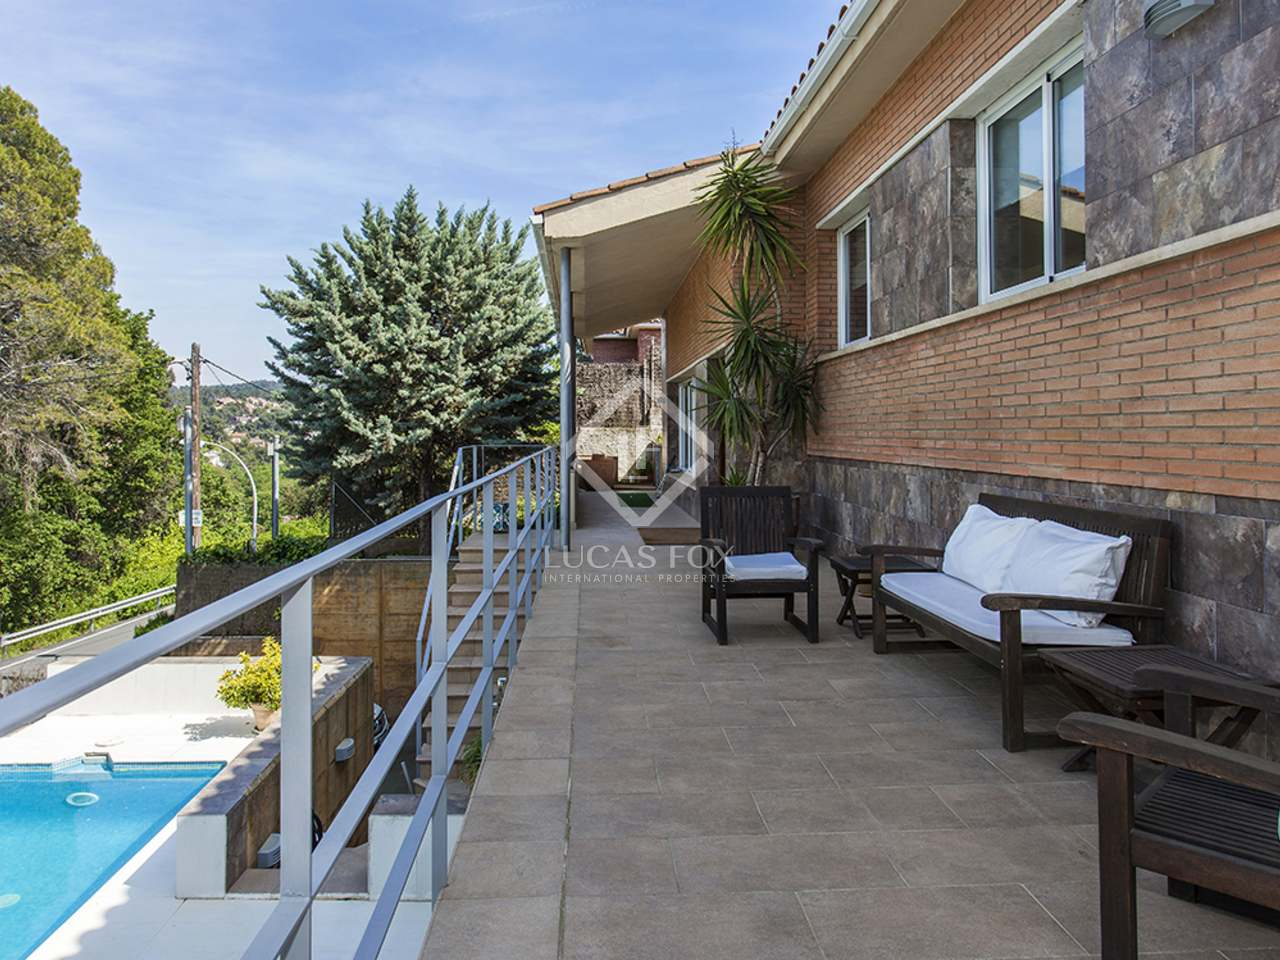 House for rent in la floresta near barcelona city for Rent a house la